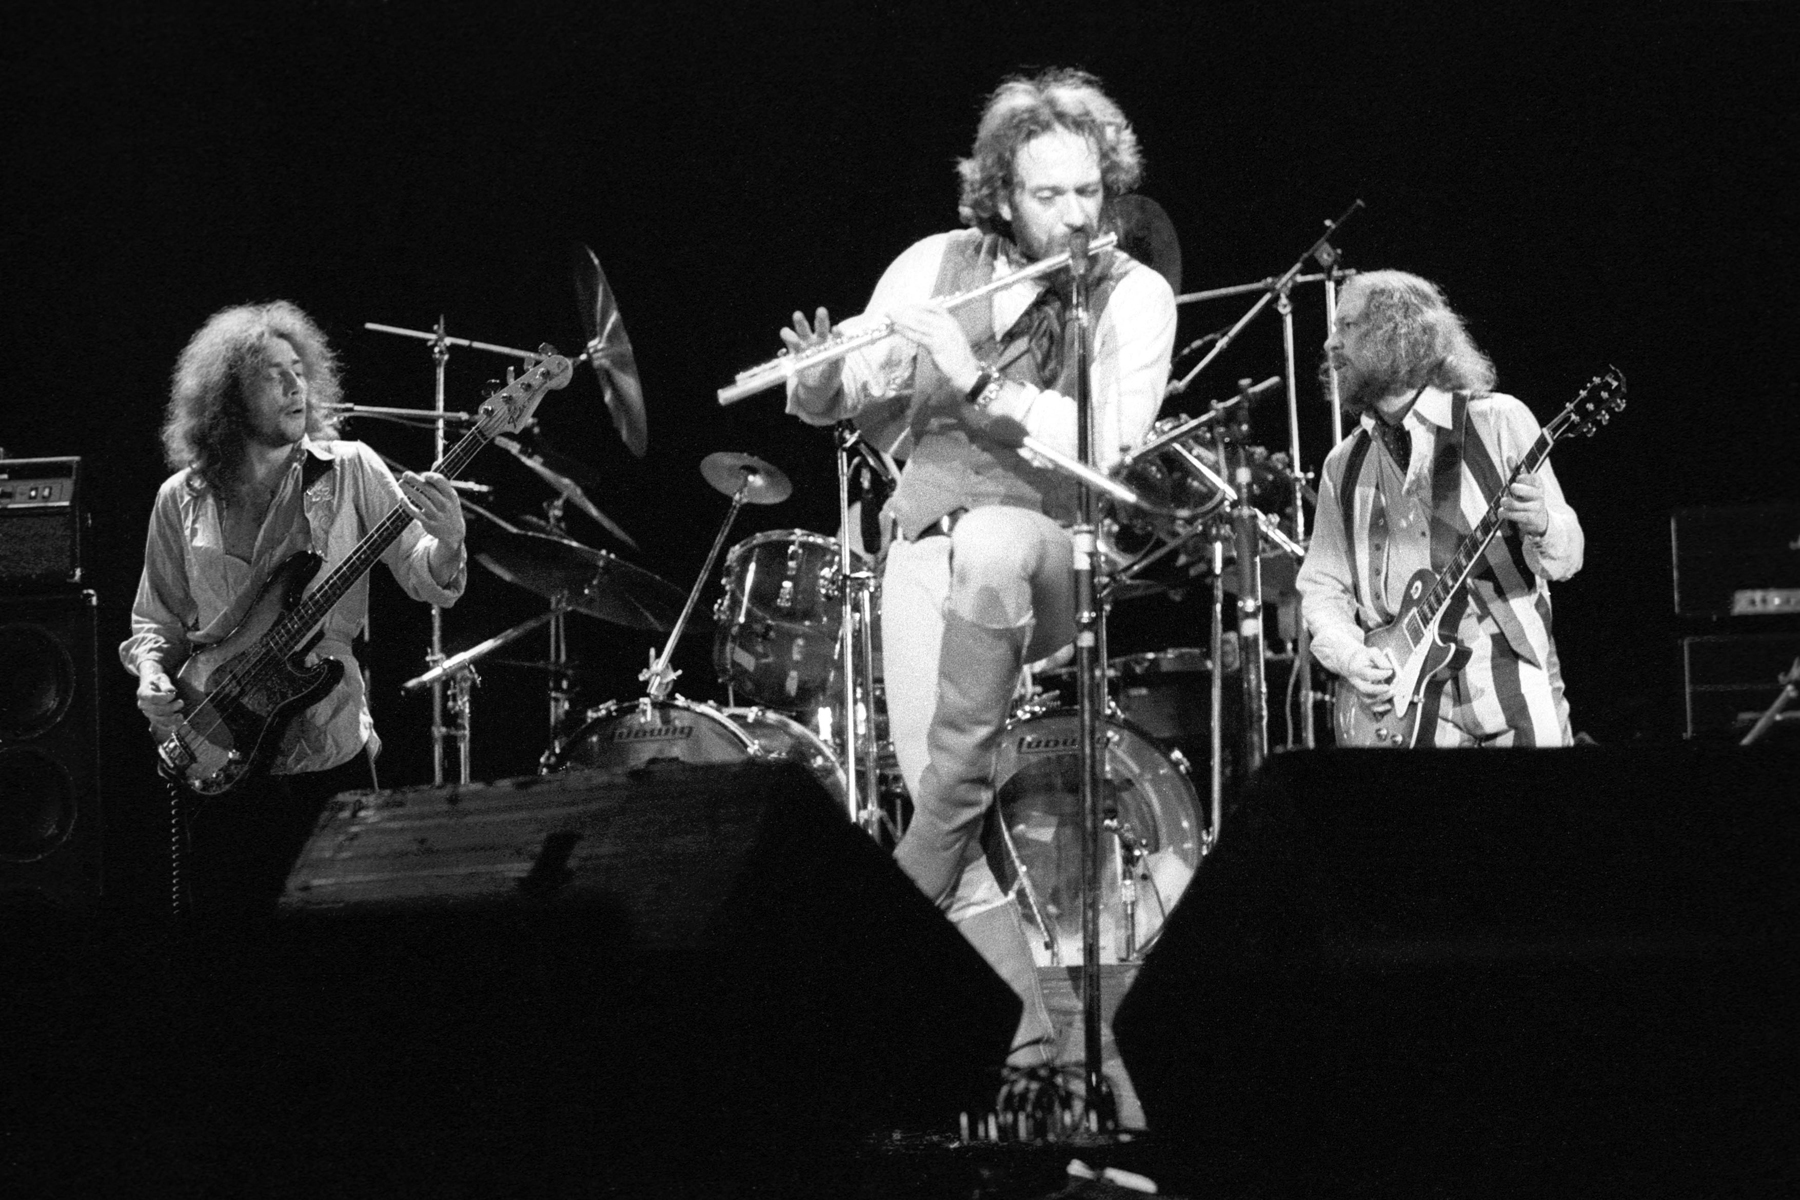 Jethro Tull Extend 50th Anniversary Tour Into 2019 With New U.S. Dates